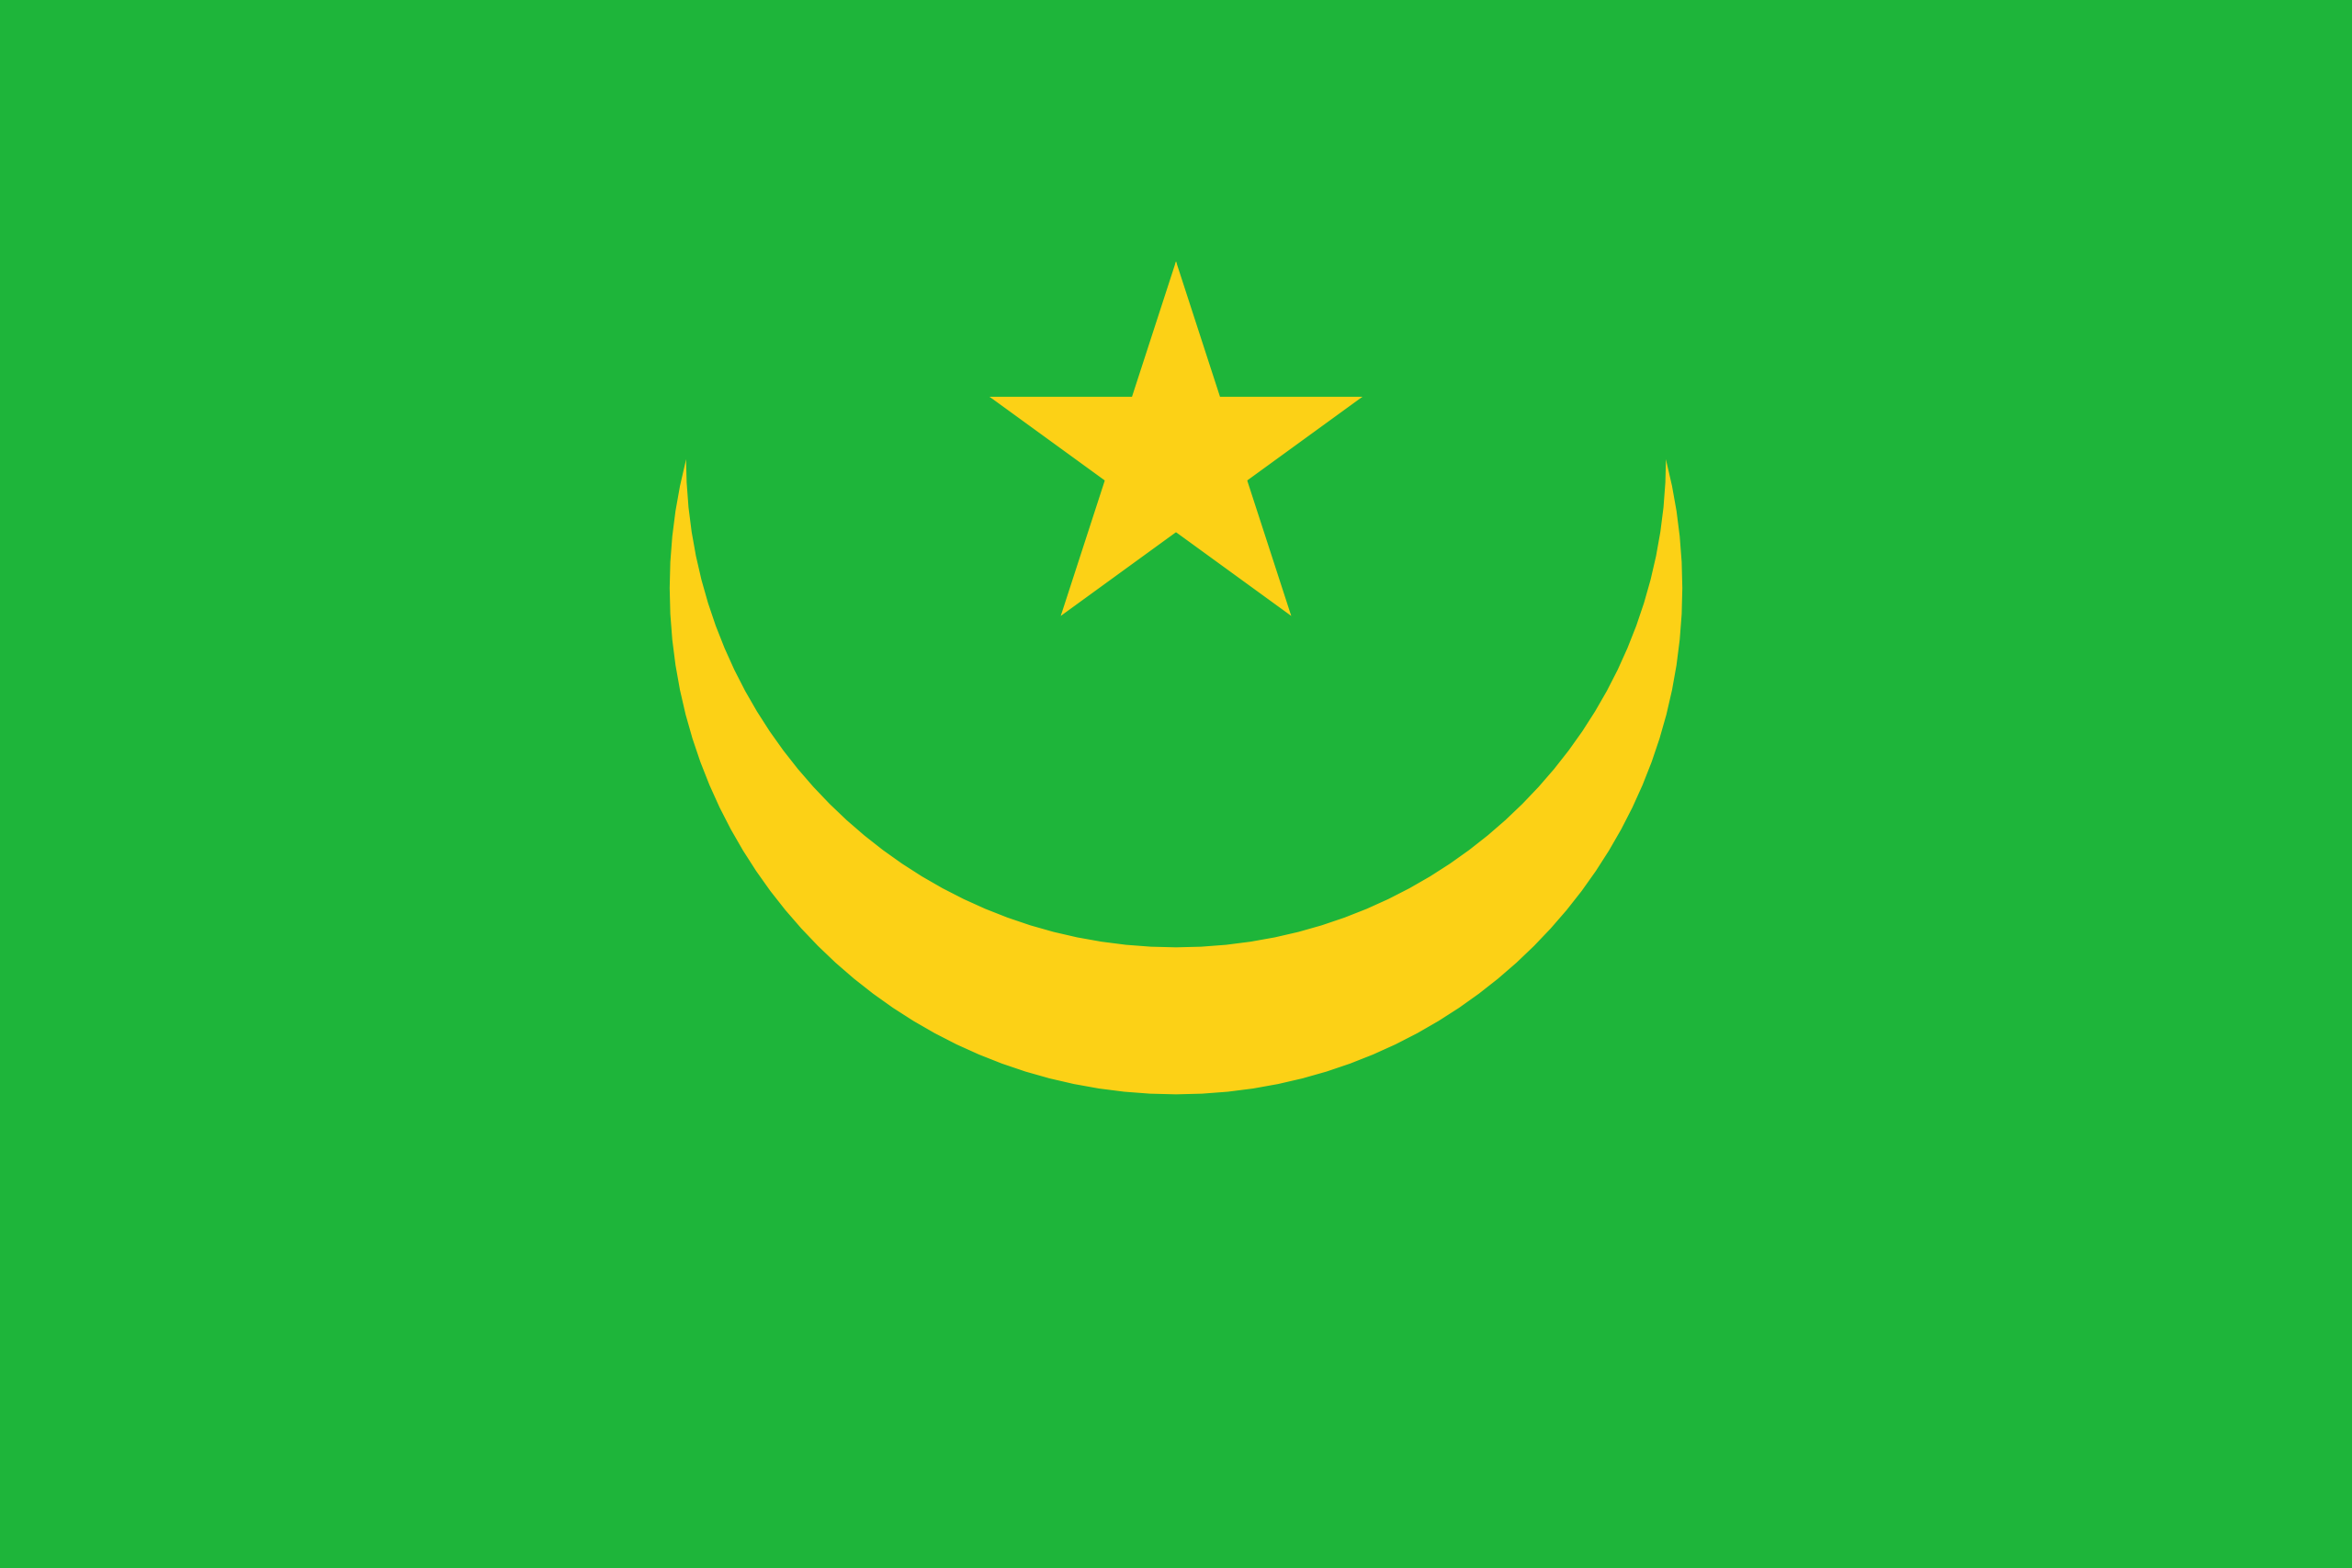 mauritania, país, emblema, insignia, σύμβολο - Wallpapers HD - Professor-falken.com